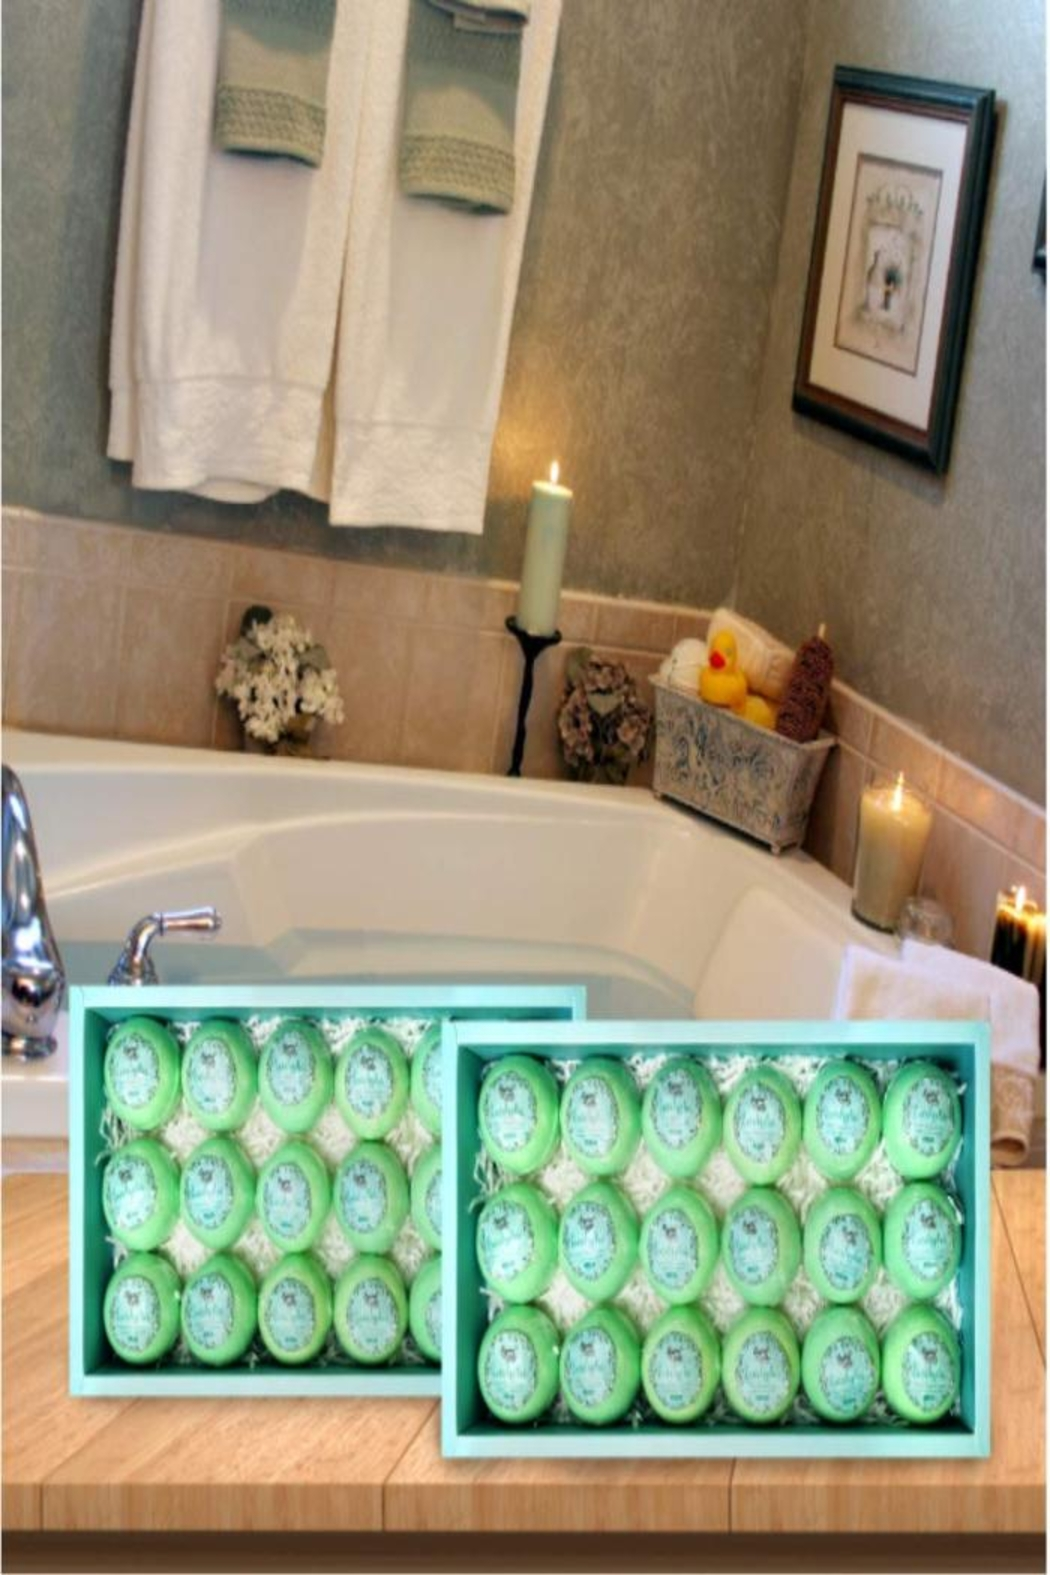 Parker Bath Bomb Gift Sets For Men. 18 Therapeutic Eucalyptus Bath Bombs For Sore Muscles - Back Cropped Image